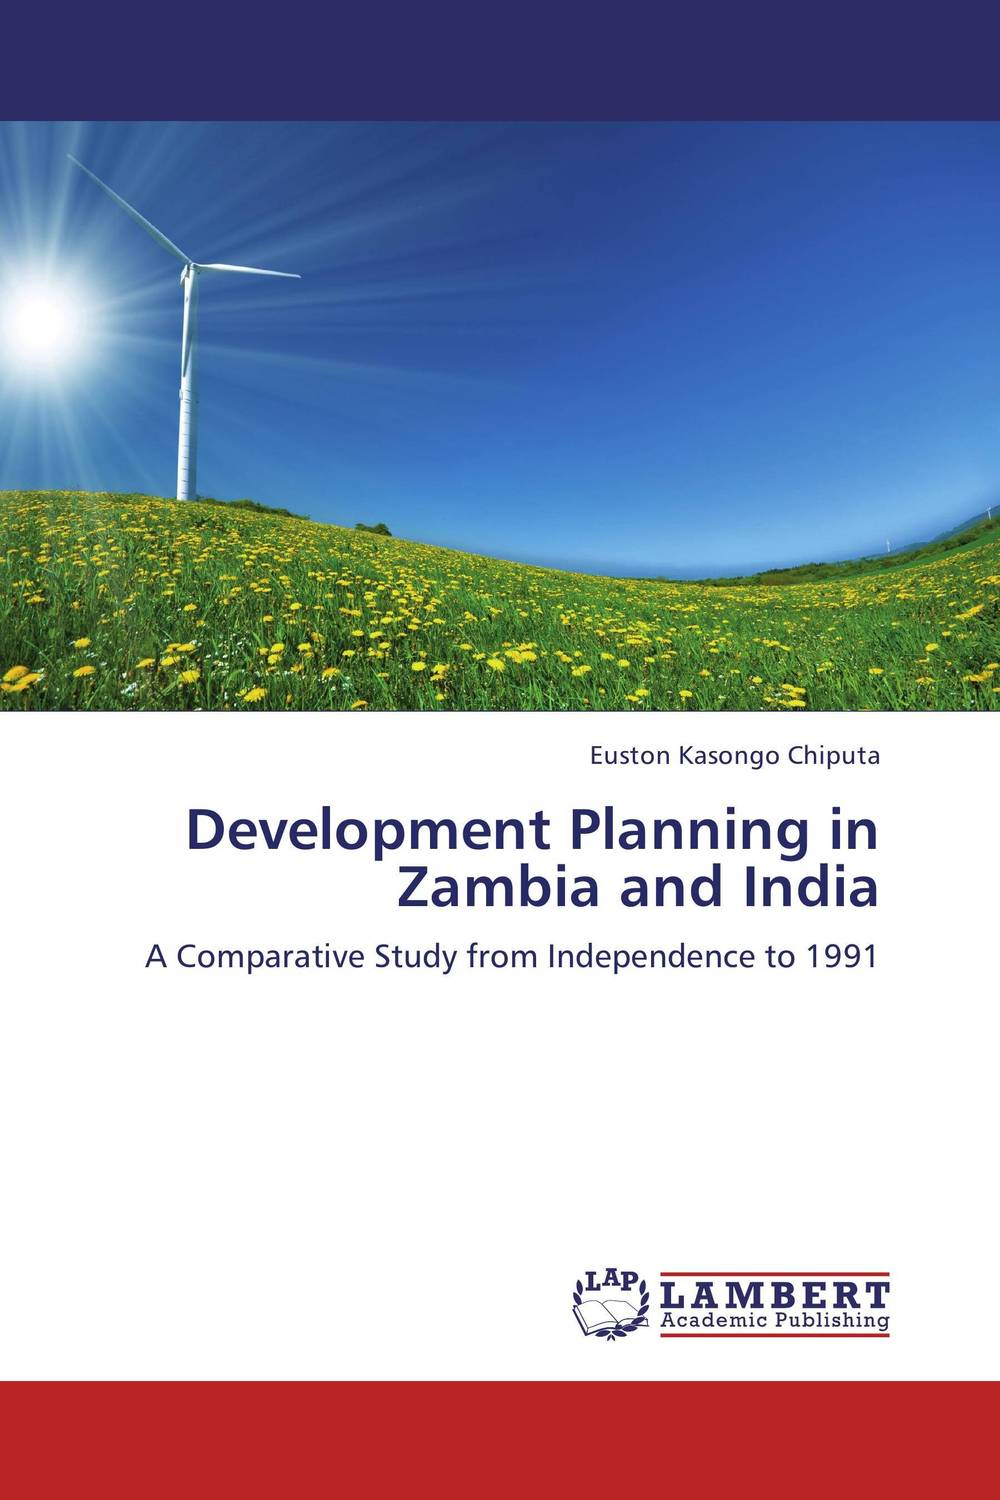 Development Planning in Zambia and India infant parenting in zambia